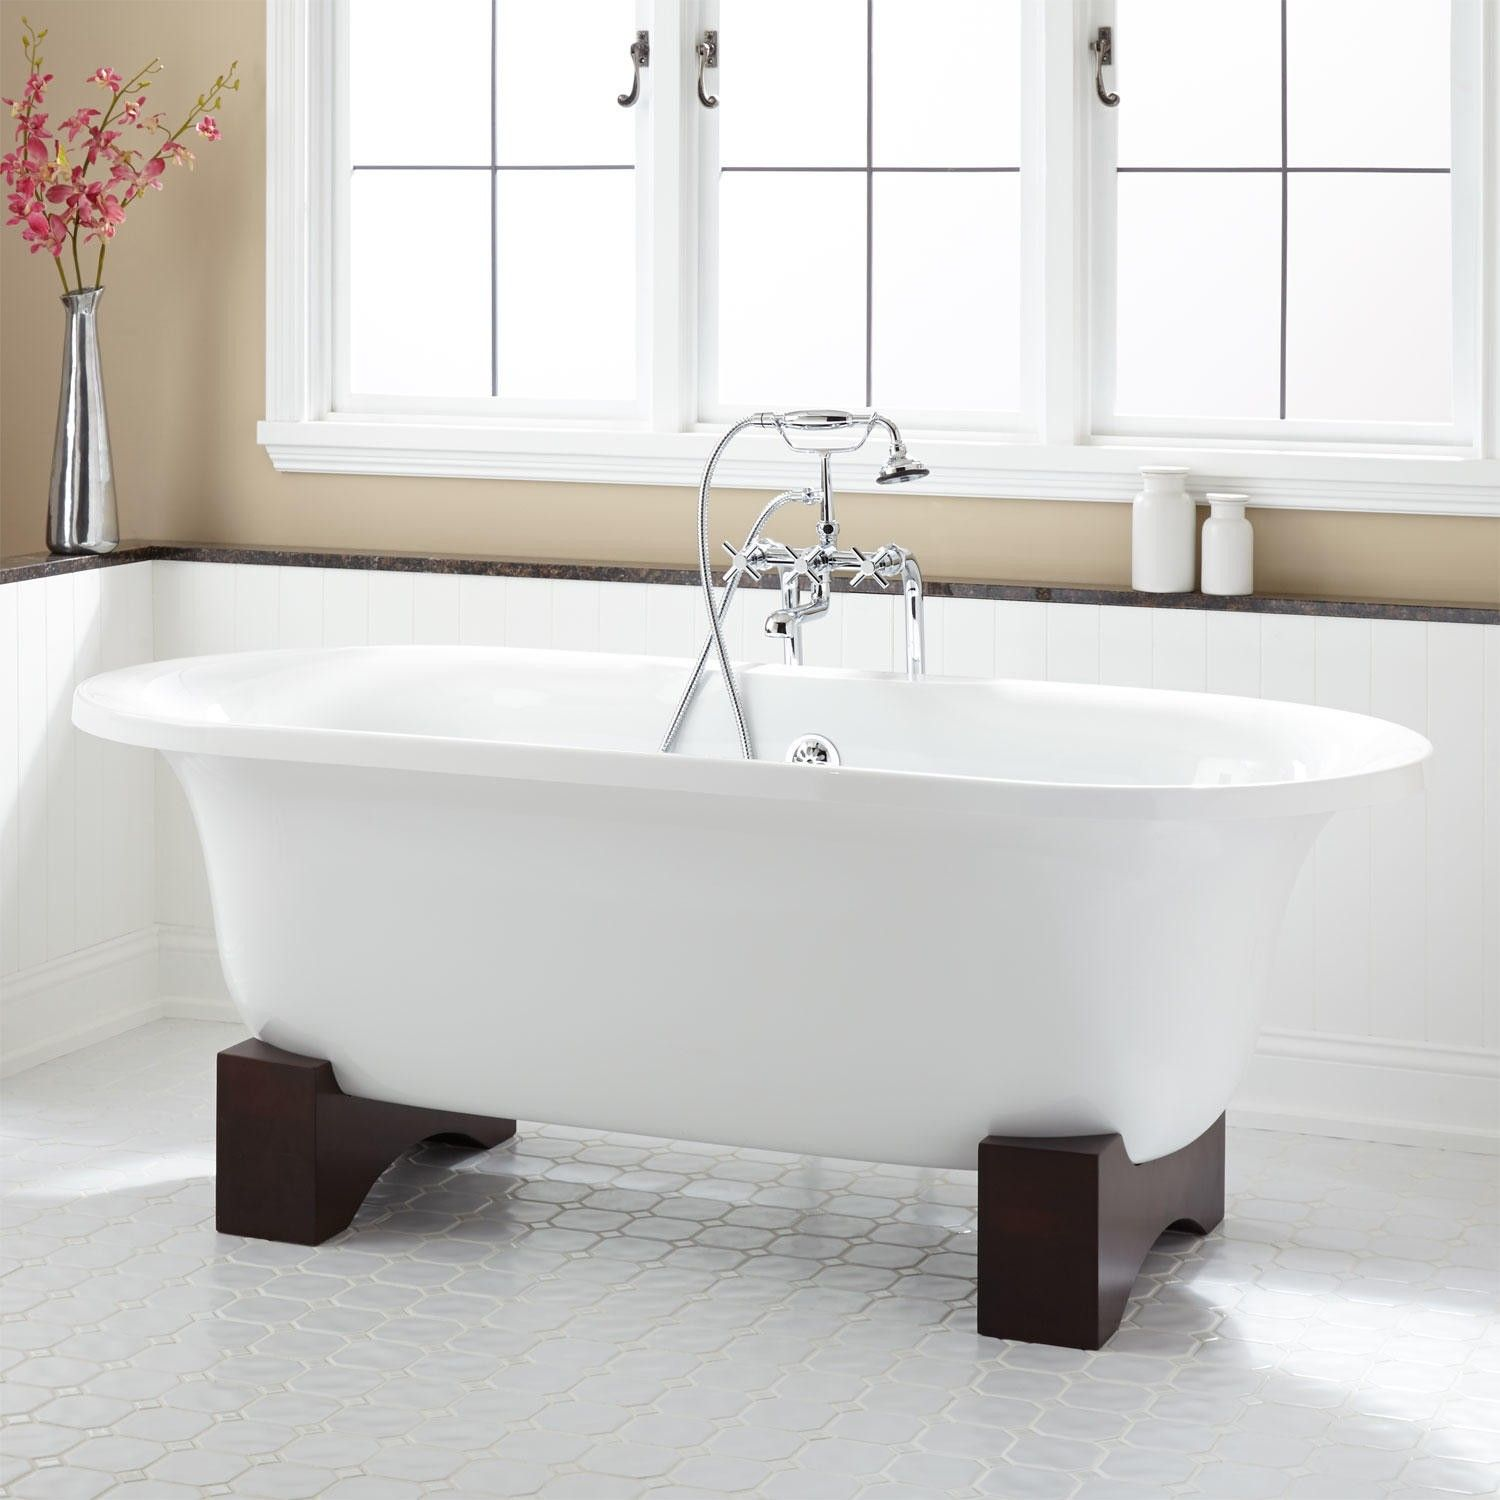 freestanding tub with faucet holes. 68  Poynter Acrylic Tub on Wood Cradles Bathrooms Pinterest